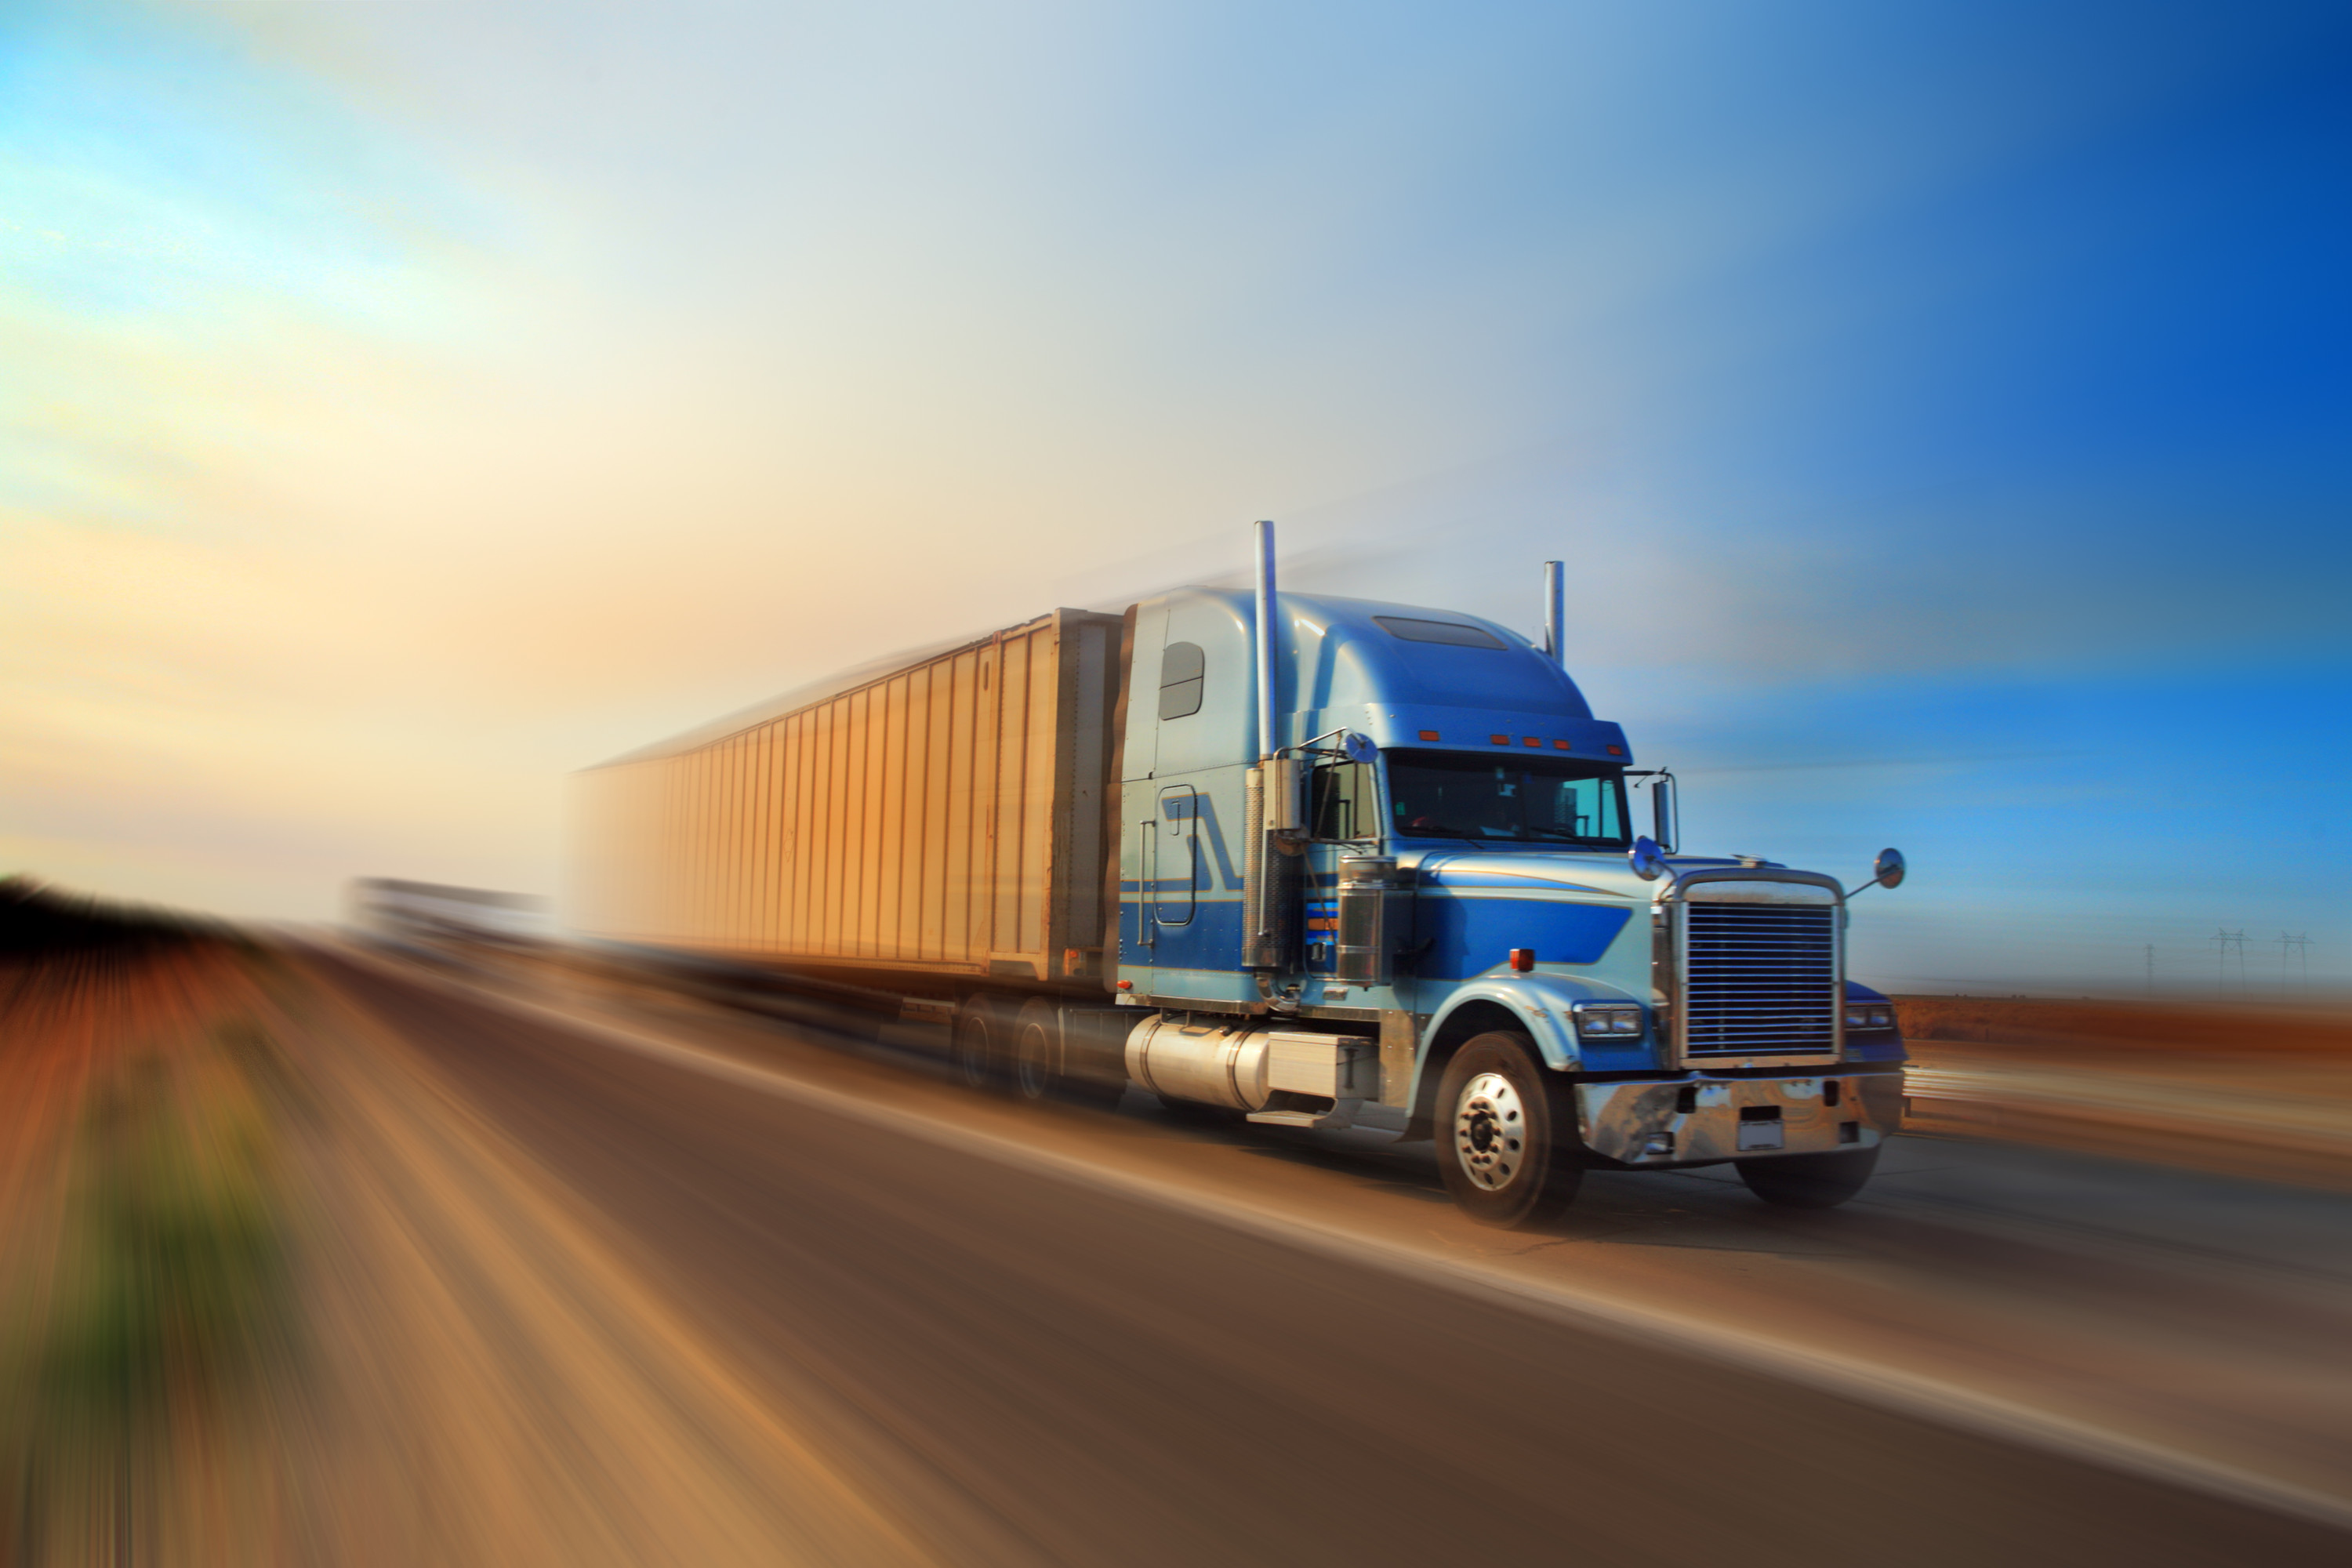 Top 6 Risks for Shipping Cargo